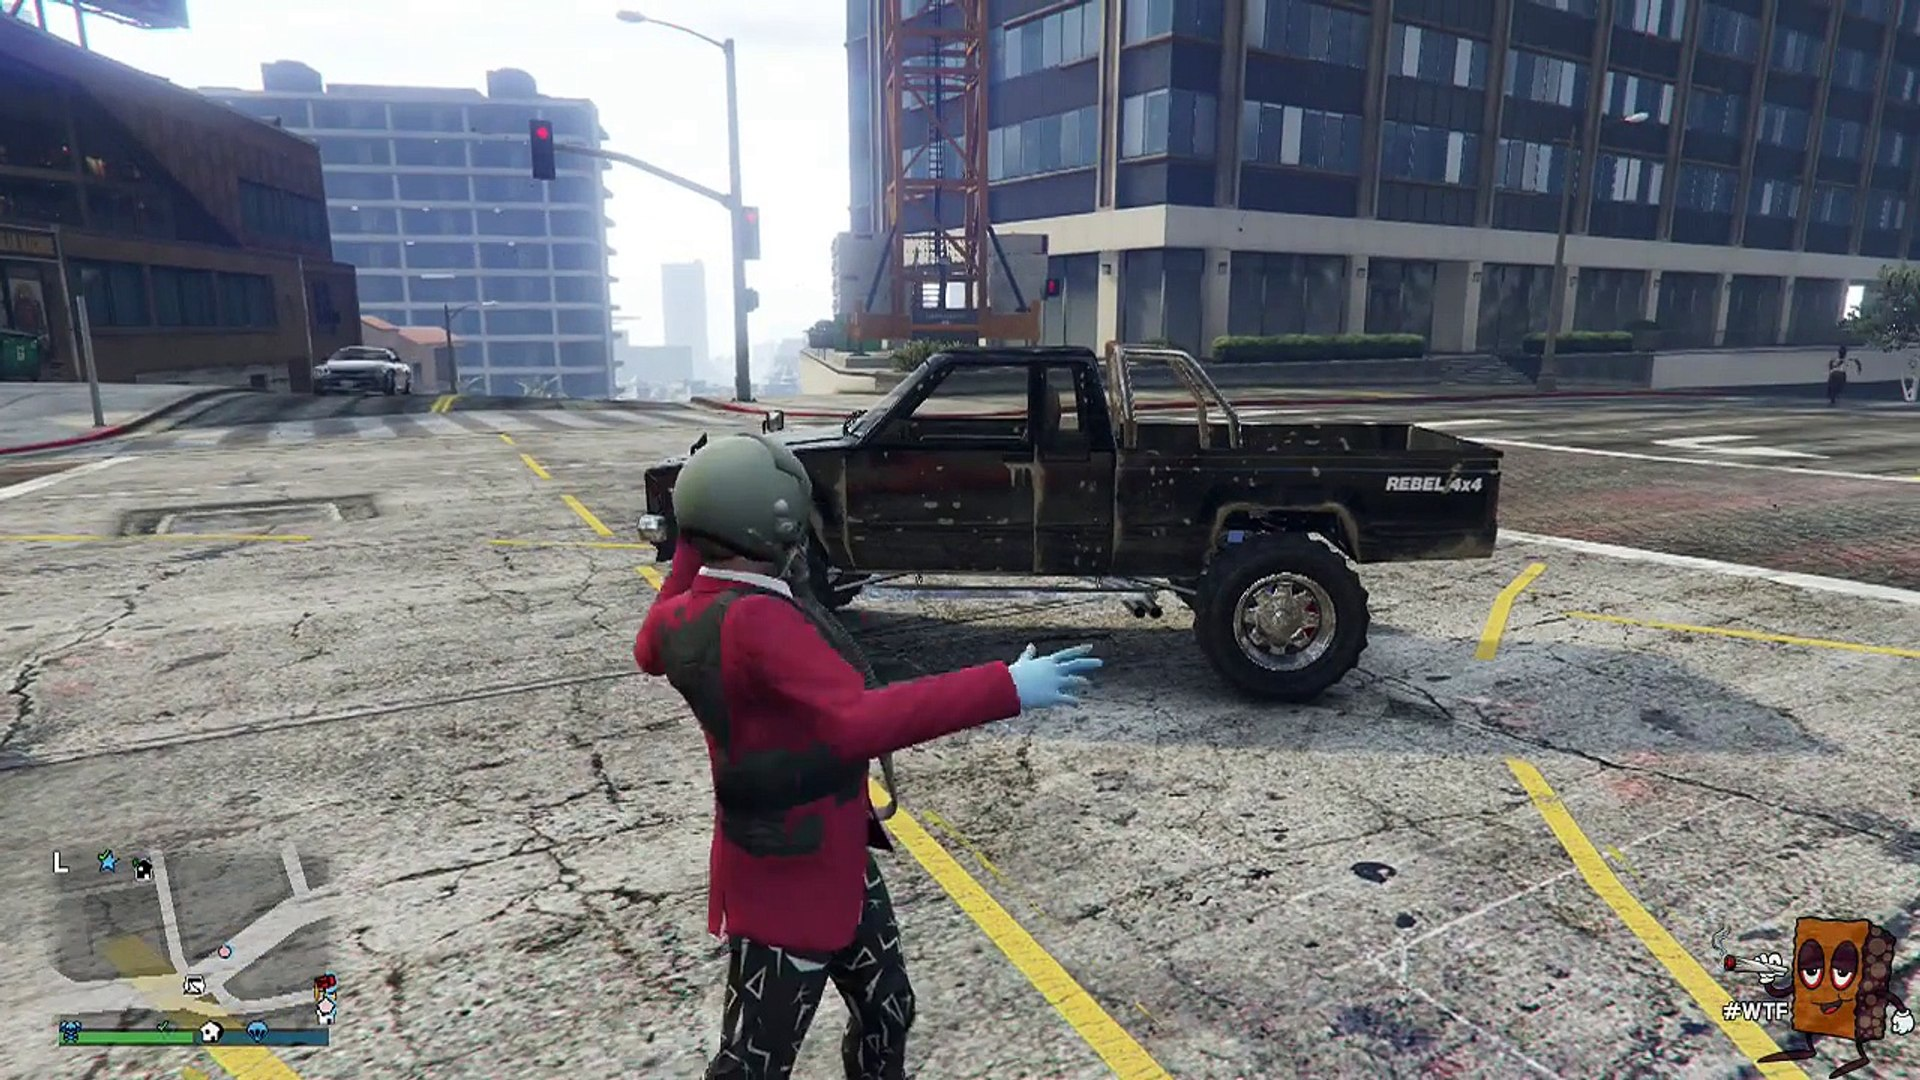 (PATCHED) GTA 5 Glitches Give cars to friends money glitch after patch 1.23 (Xbox One & PS4)